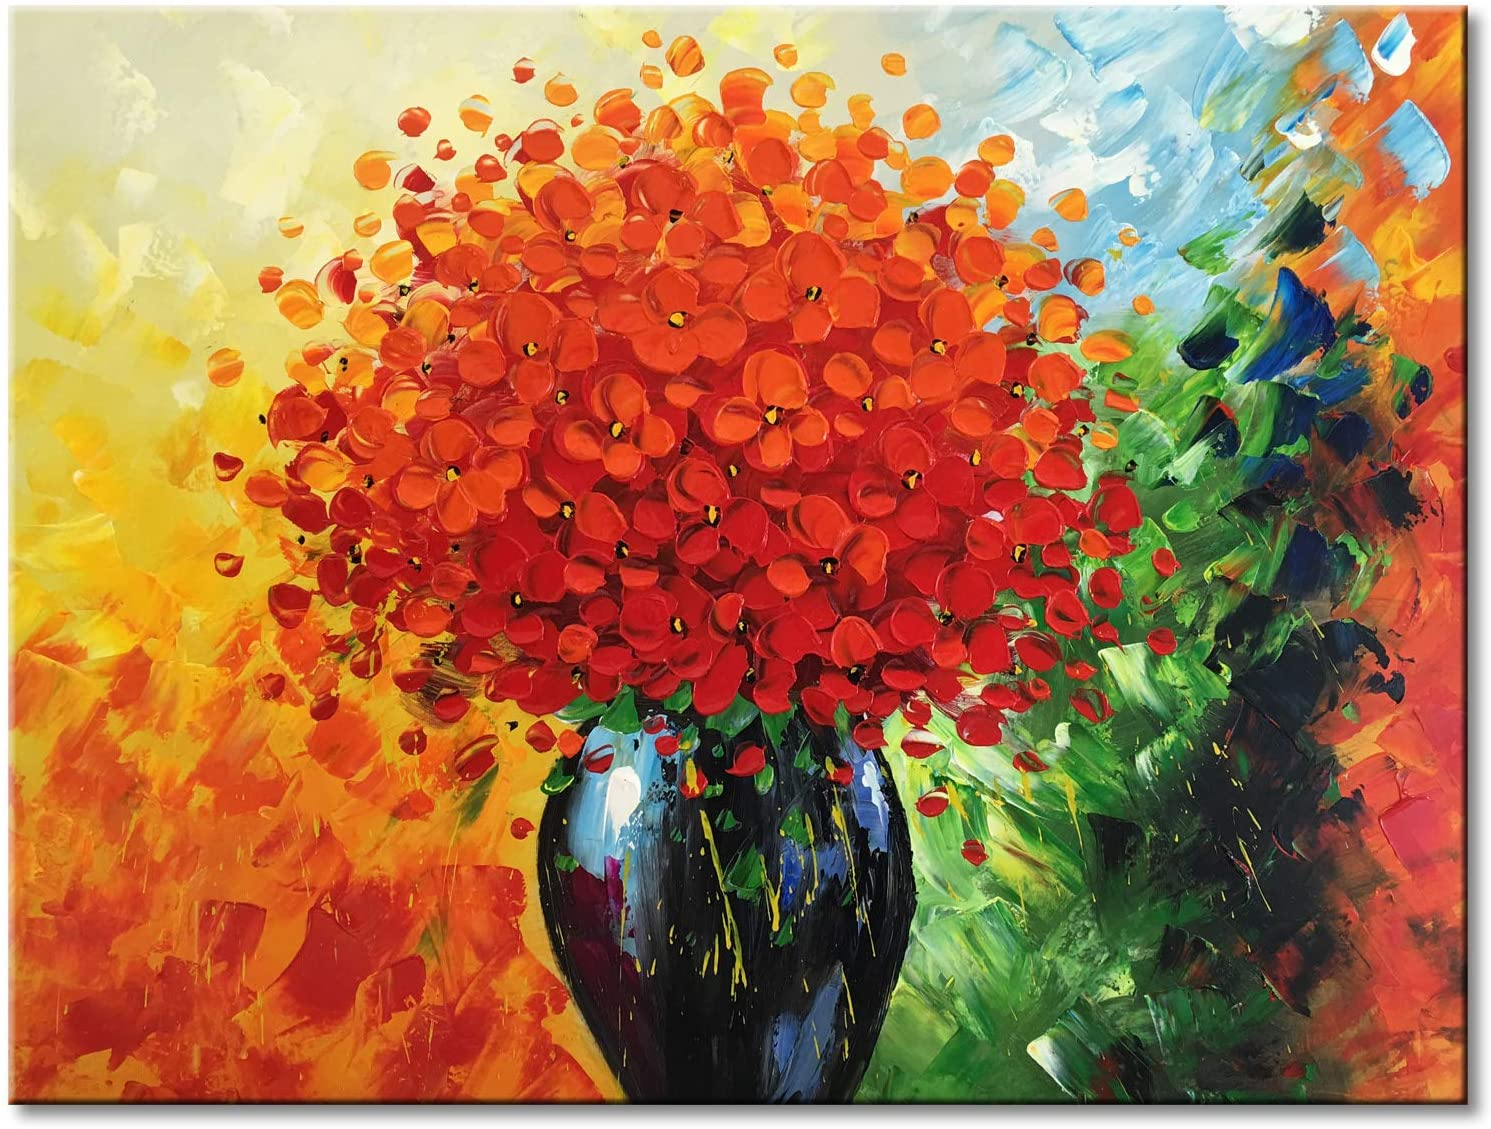 Abstract Floral Painting Abstract Floral Art Contemporary Art Abstract Painting Artwork Interior Art Free Shipping Canada